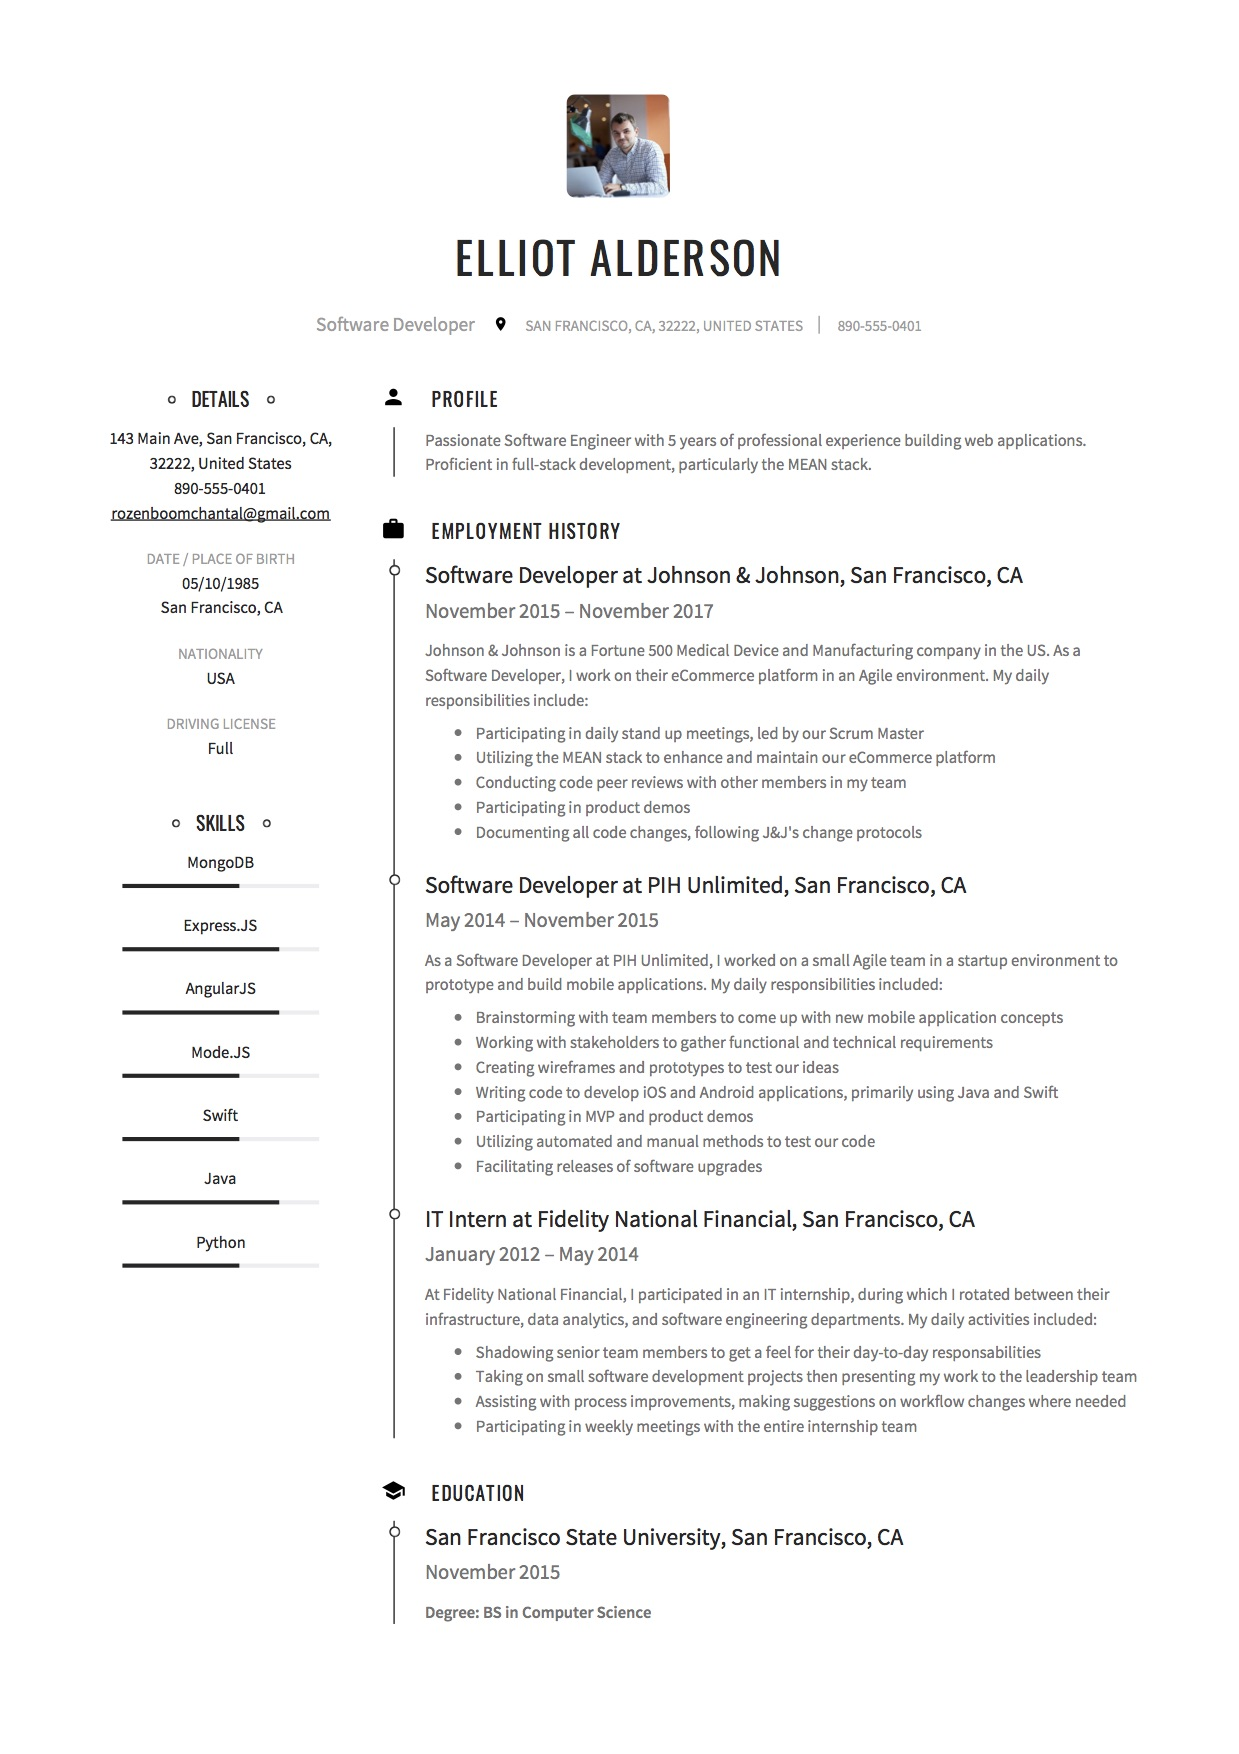 Elliot Alderson   Software Developer Resume Sample(1)